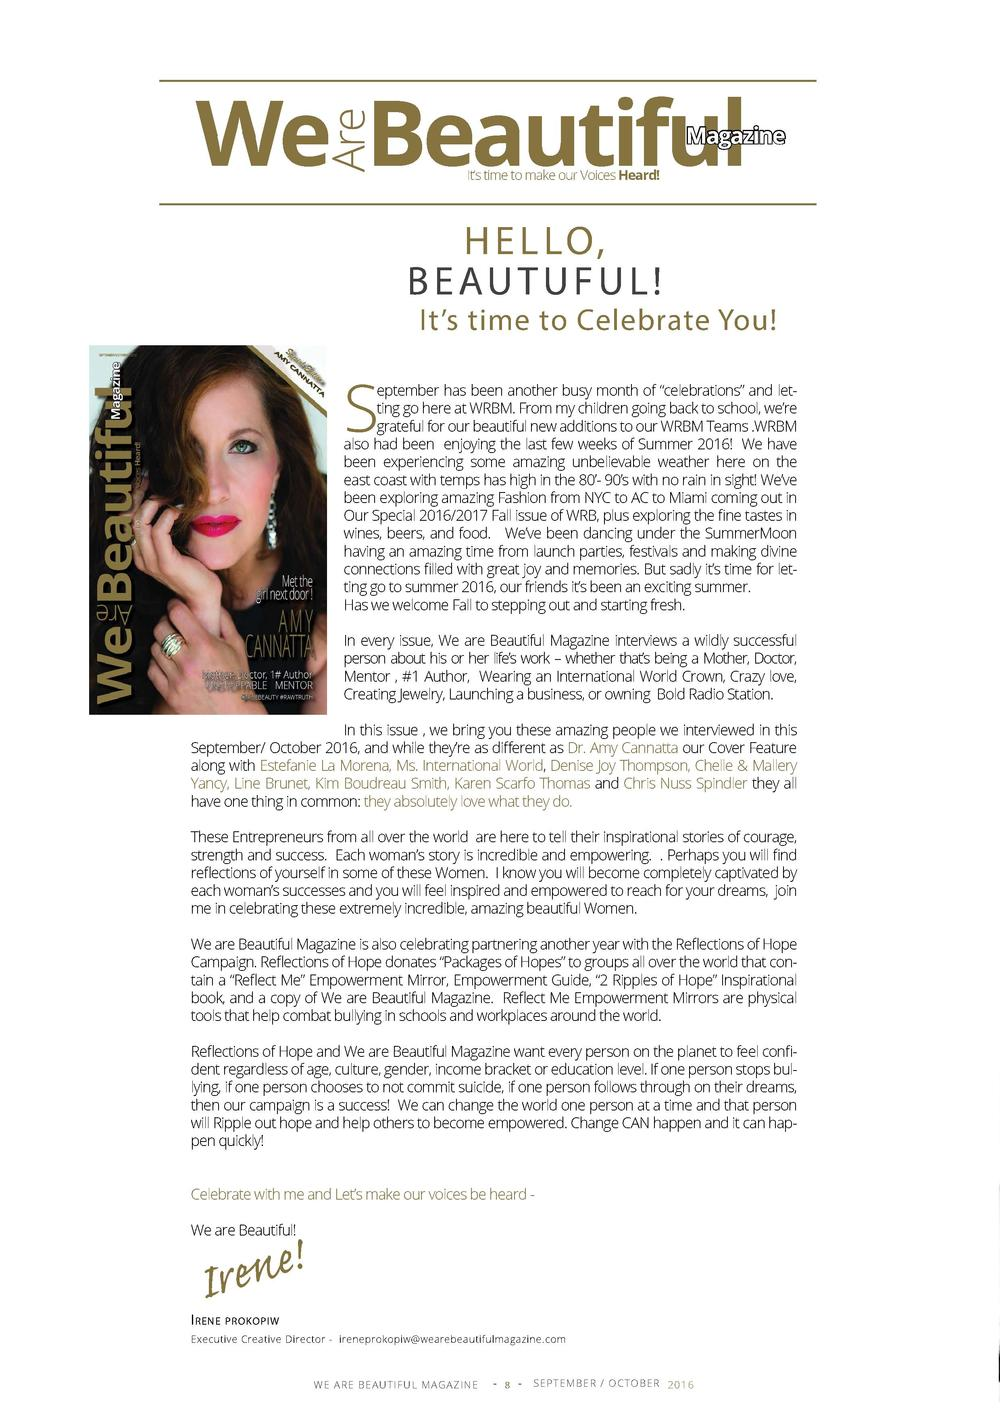 Are  We Beautiful  Magazine  It   s time to make our Voices Heard   H E L LO, B E AU T U F U L    It   s time to Celebrate...